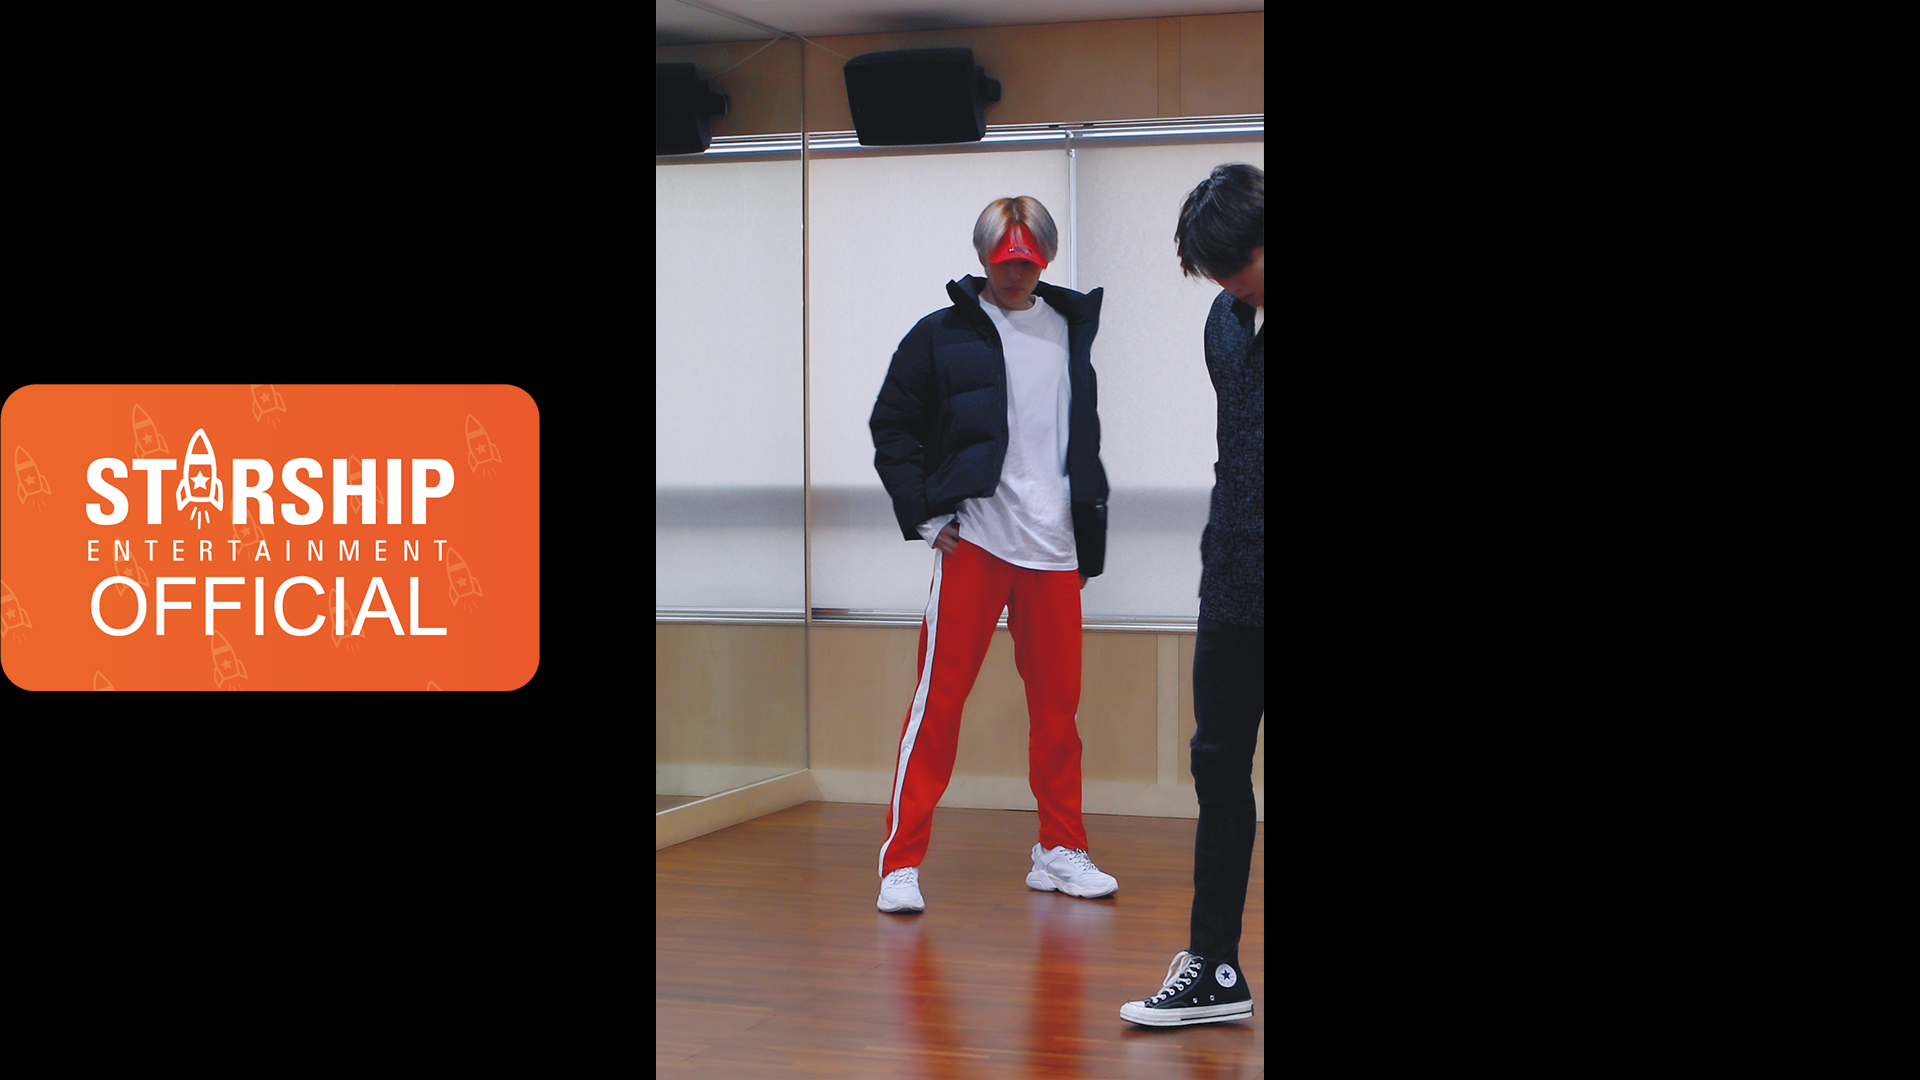 [MINHYUK][Dance Practice] 몬스타엑스 (MONSTA X) - 'SHOOT OUT' Vertical Video